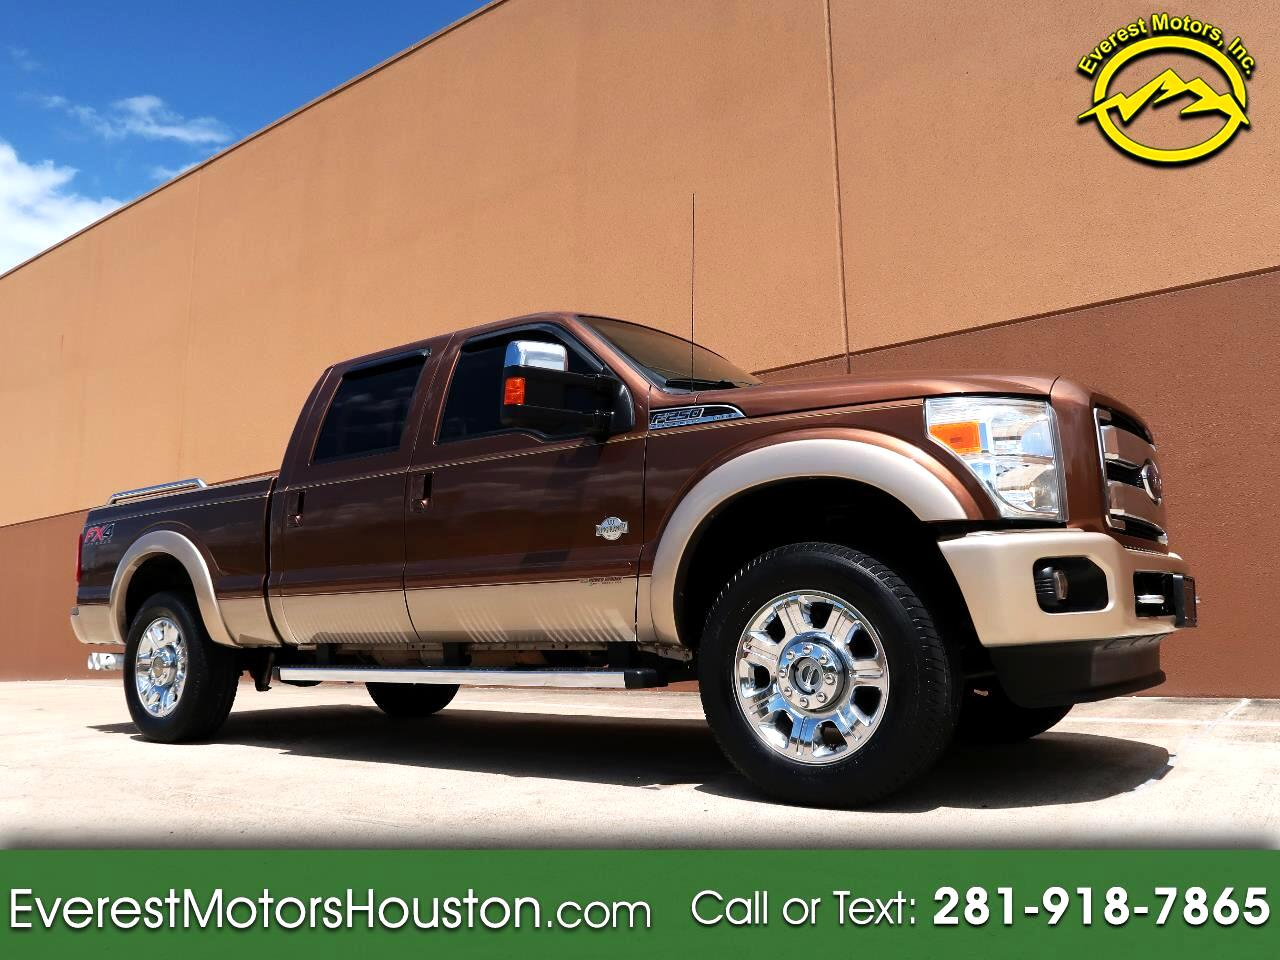 2012 Ford F-250 SD KING RANCH CREW CAB SWB 4WD DIESEL LOADED